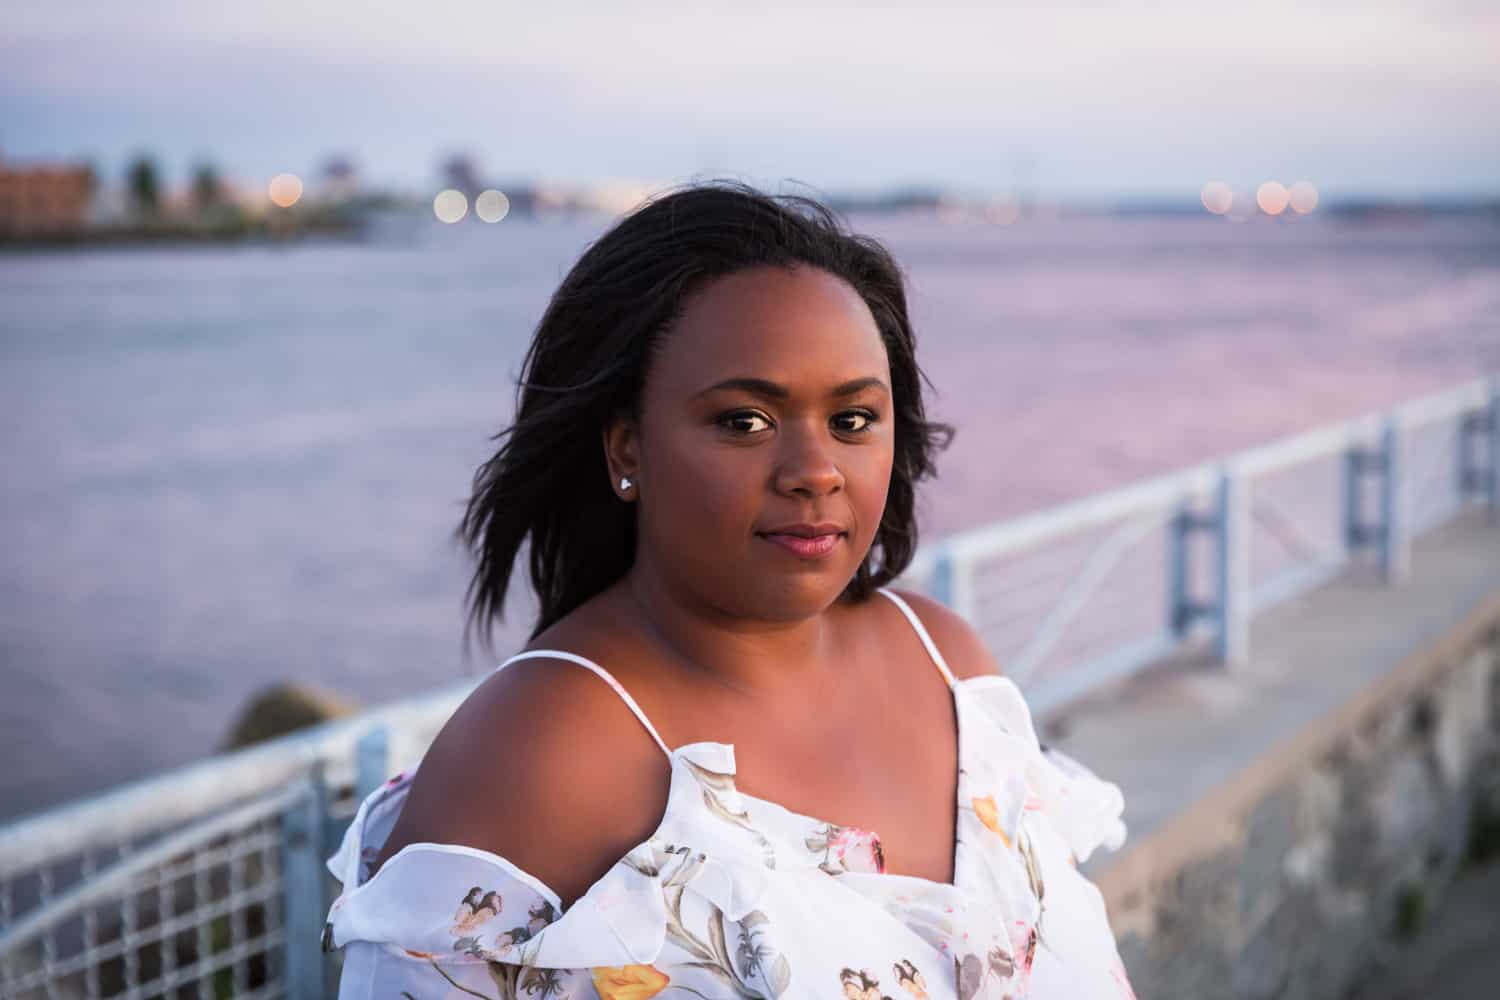 African American woman in white floral dress standing in front of waterfront railing